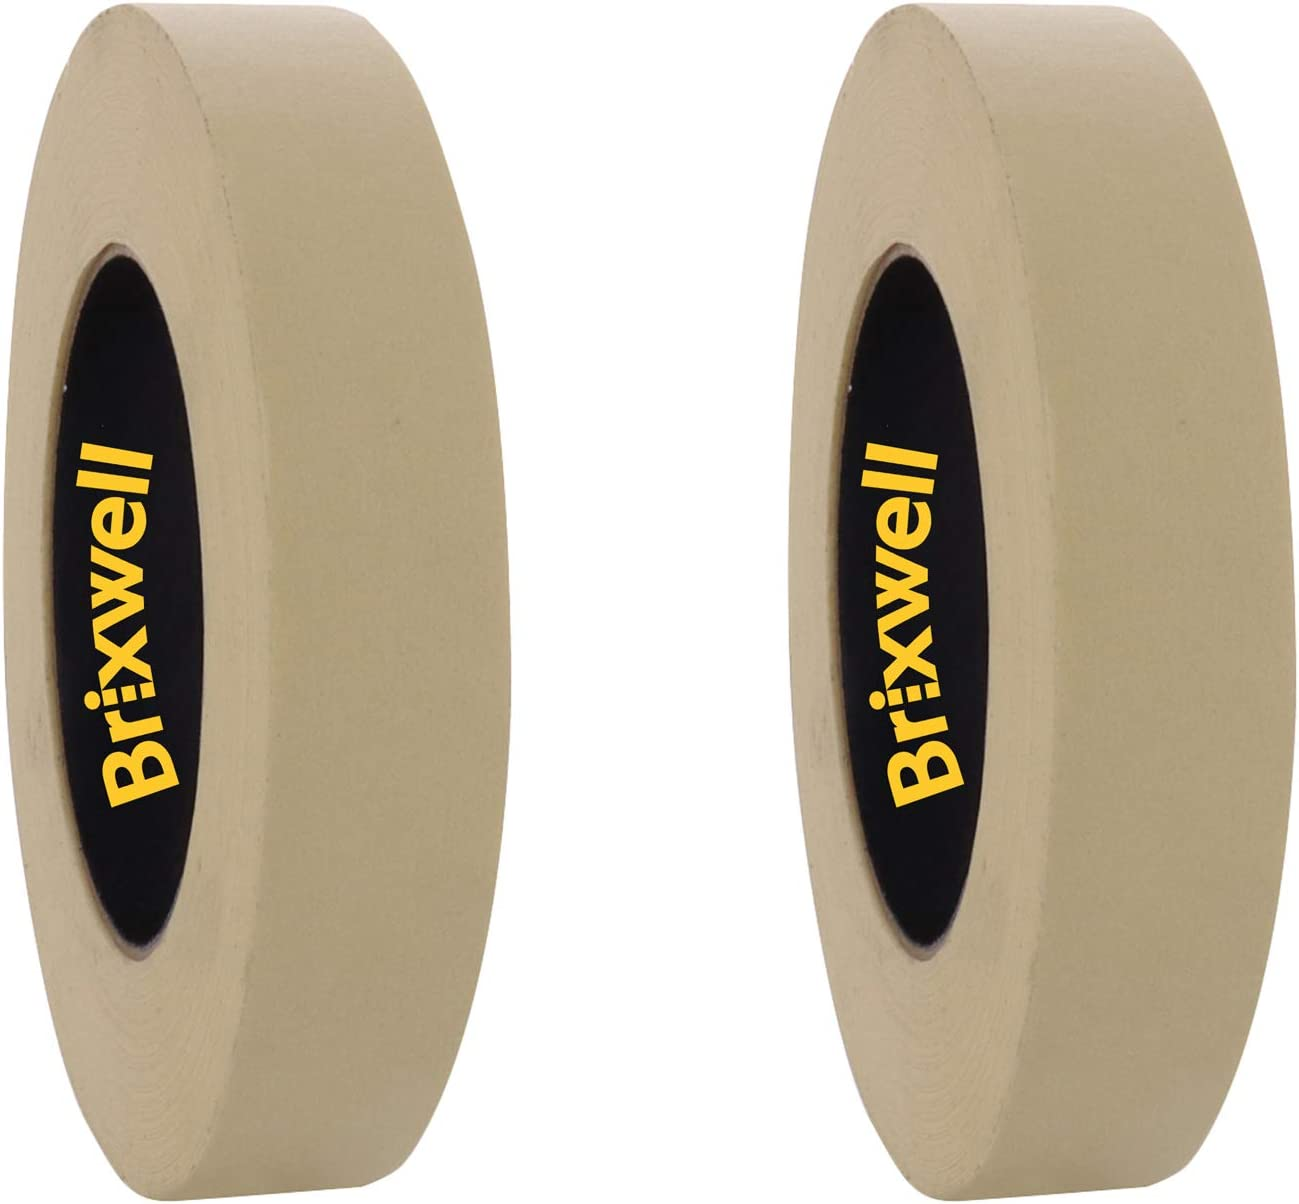 Brixwell 3 Rolls Pro Grade General Purpose Masking Tan Tape 3 Inch x 60 Yard Made in the USA